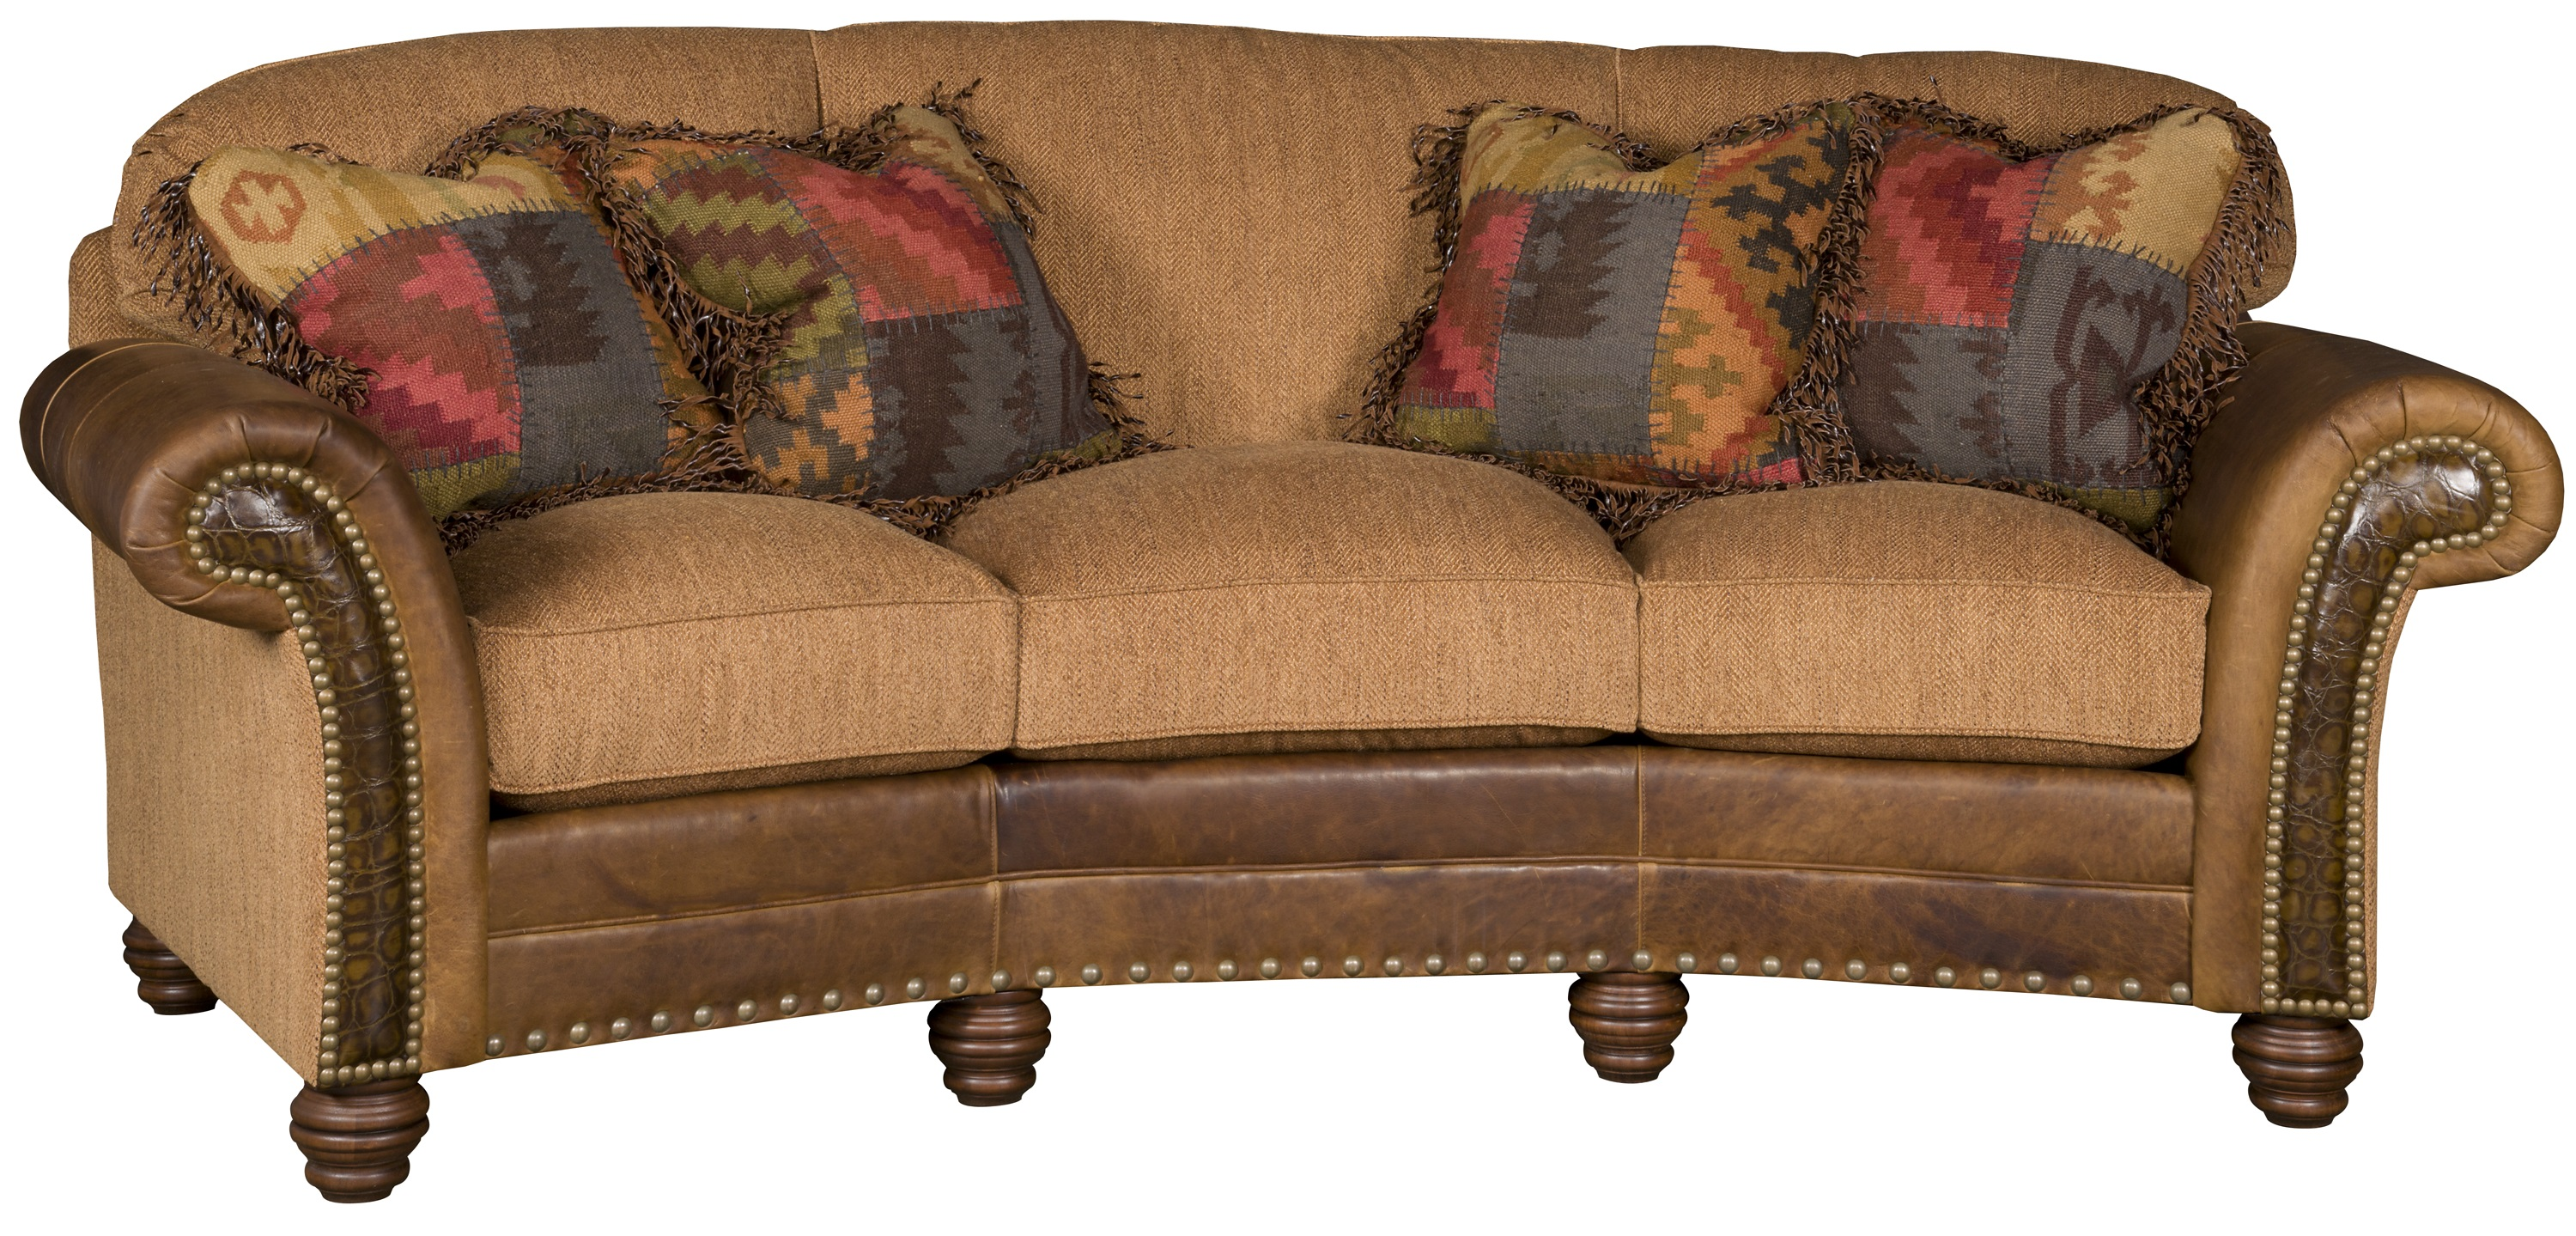 Tuscan Fabric and Leather Sofa